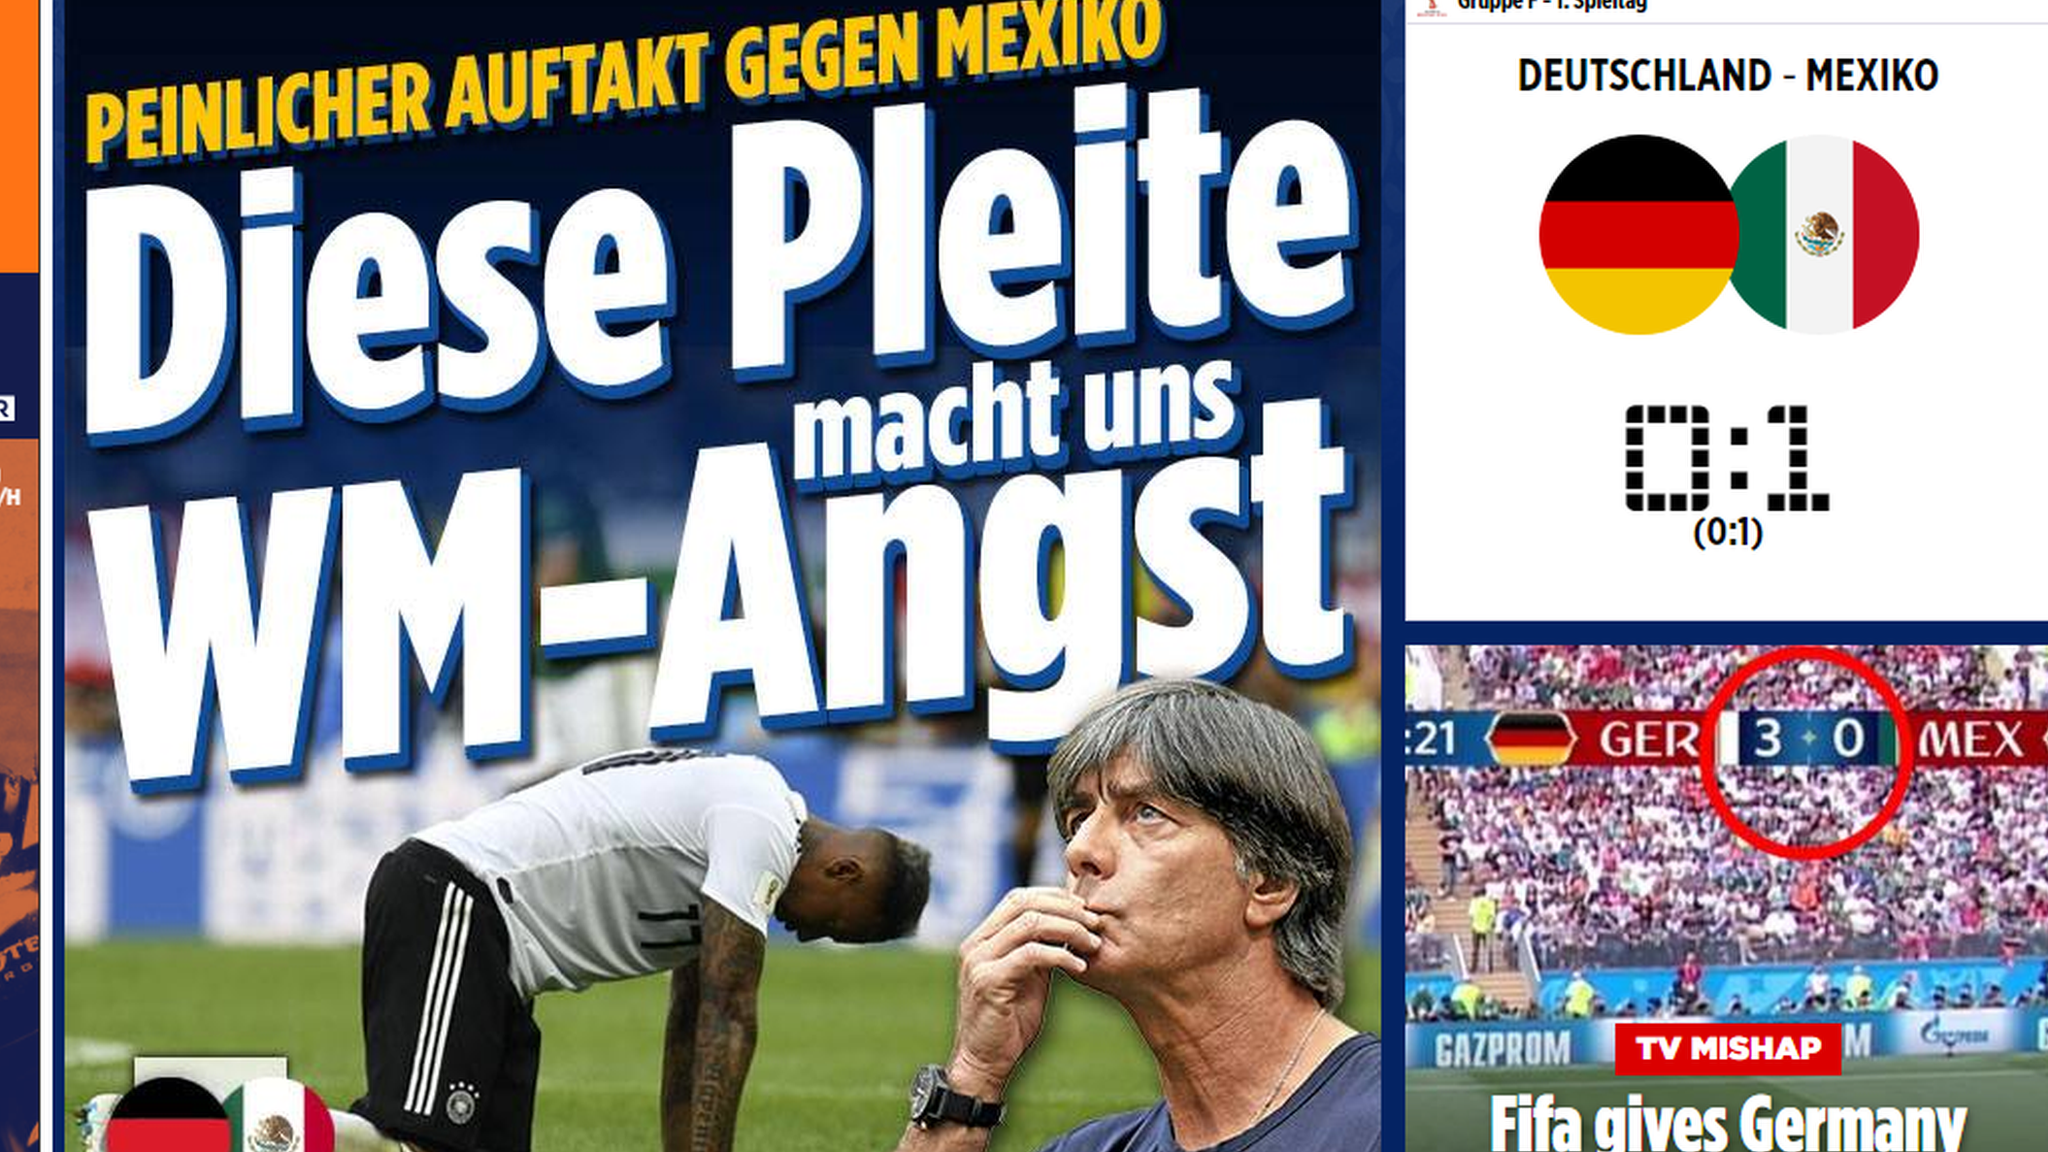 World Cup 2018: Germany 'crestfallen' as shock Mexico defeat is called 'embarrassing'